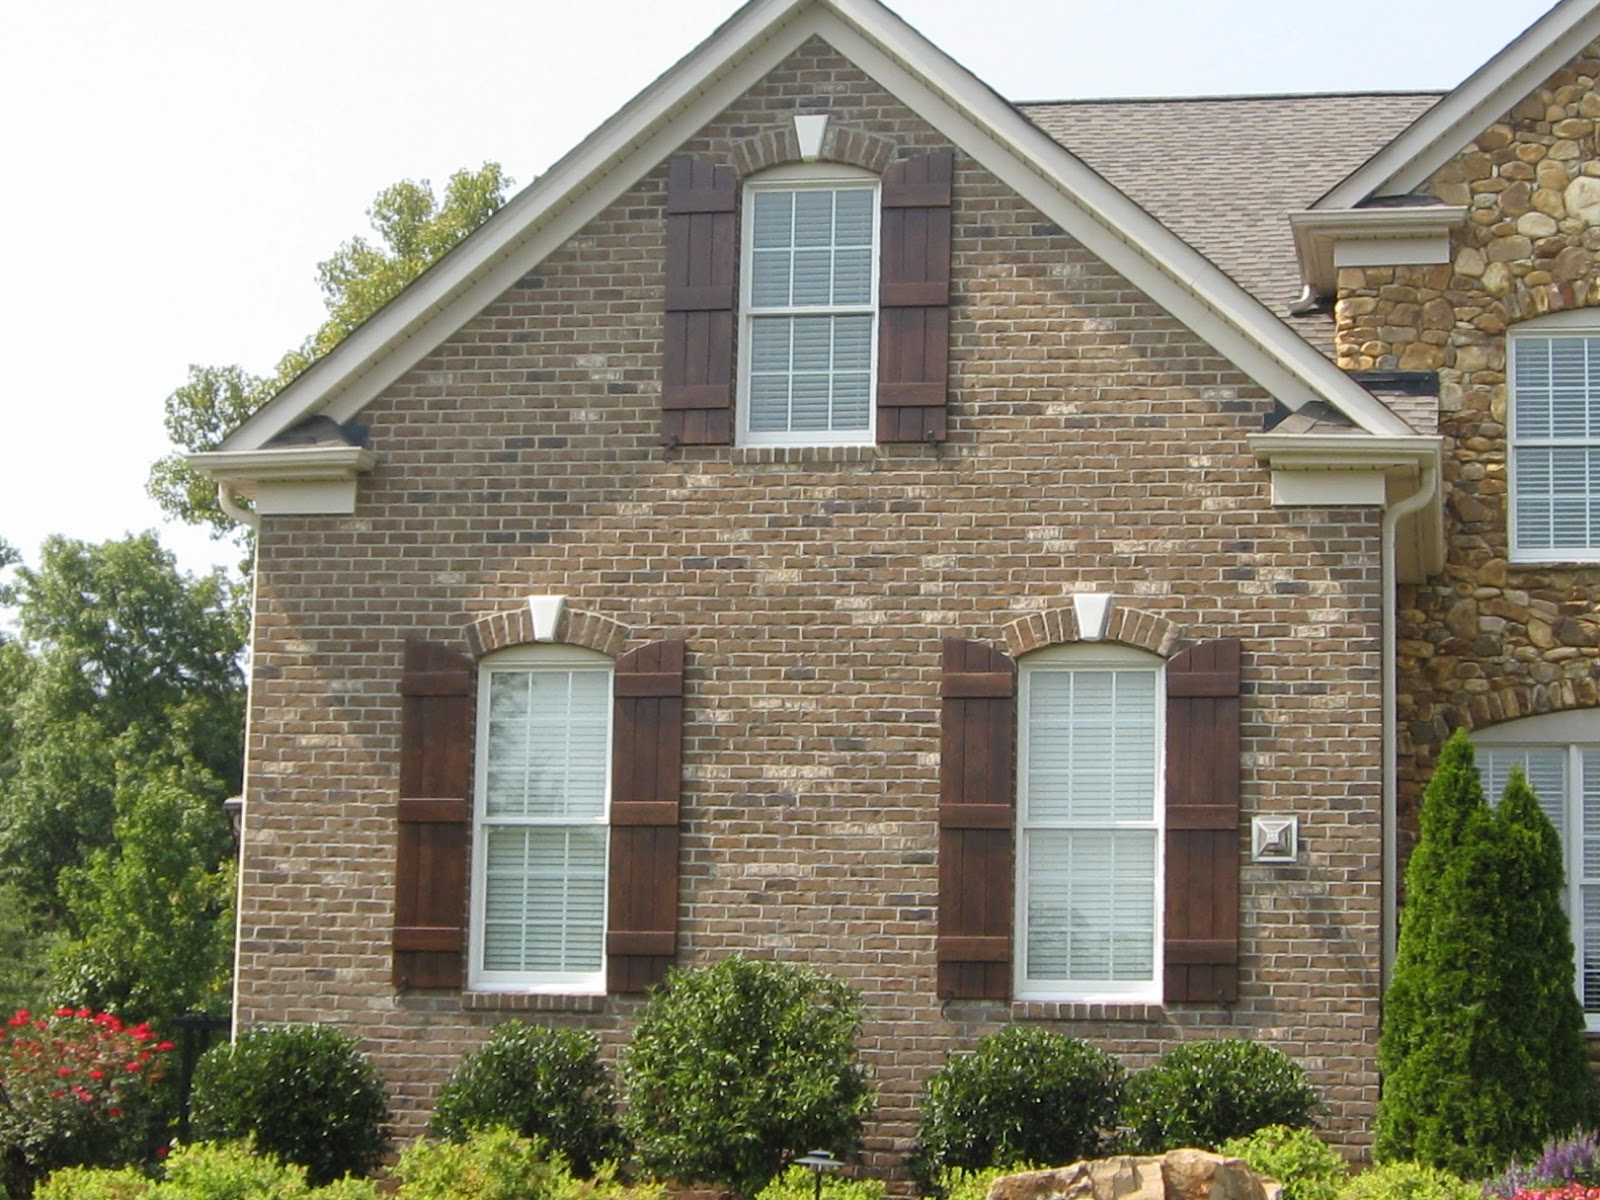 Transform Your home's exterior affordably with custom ...